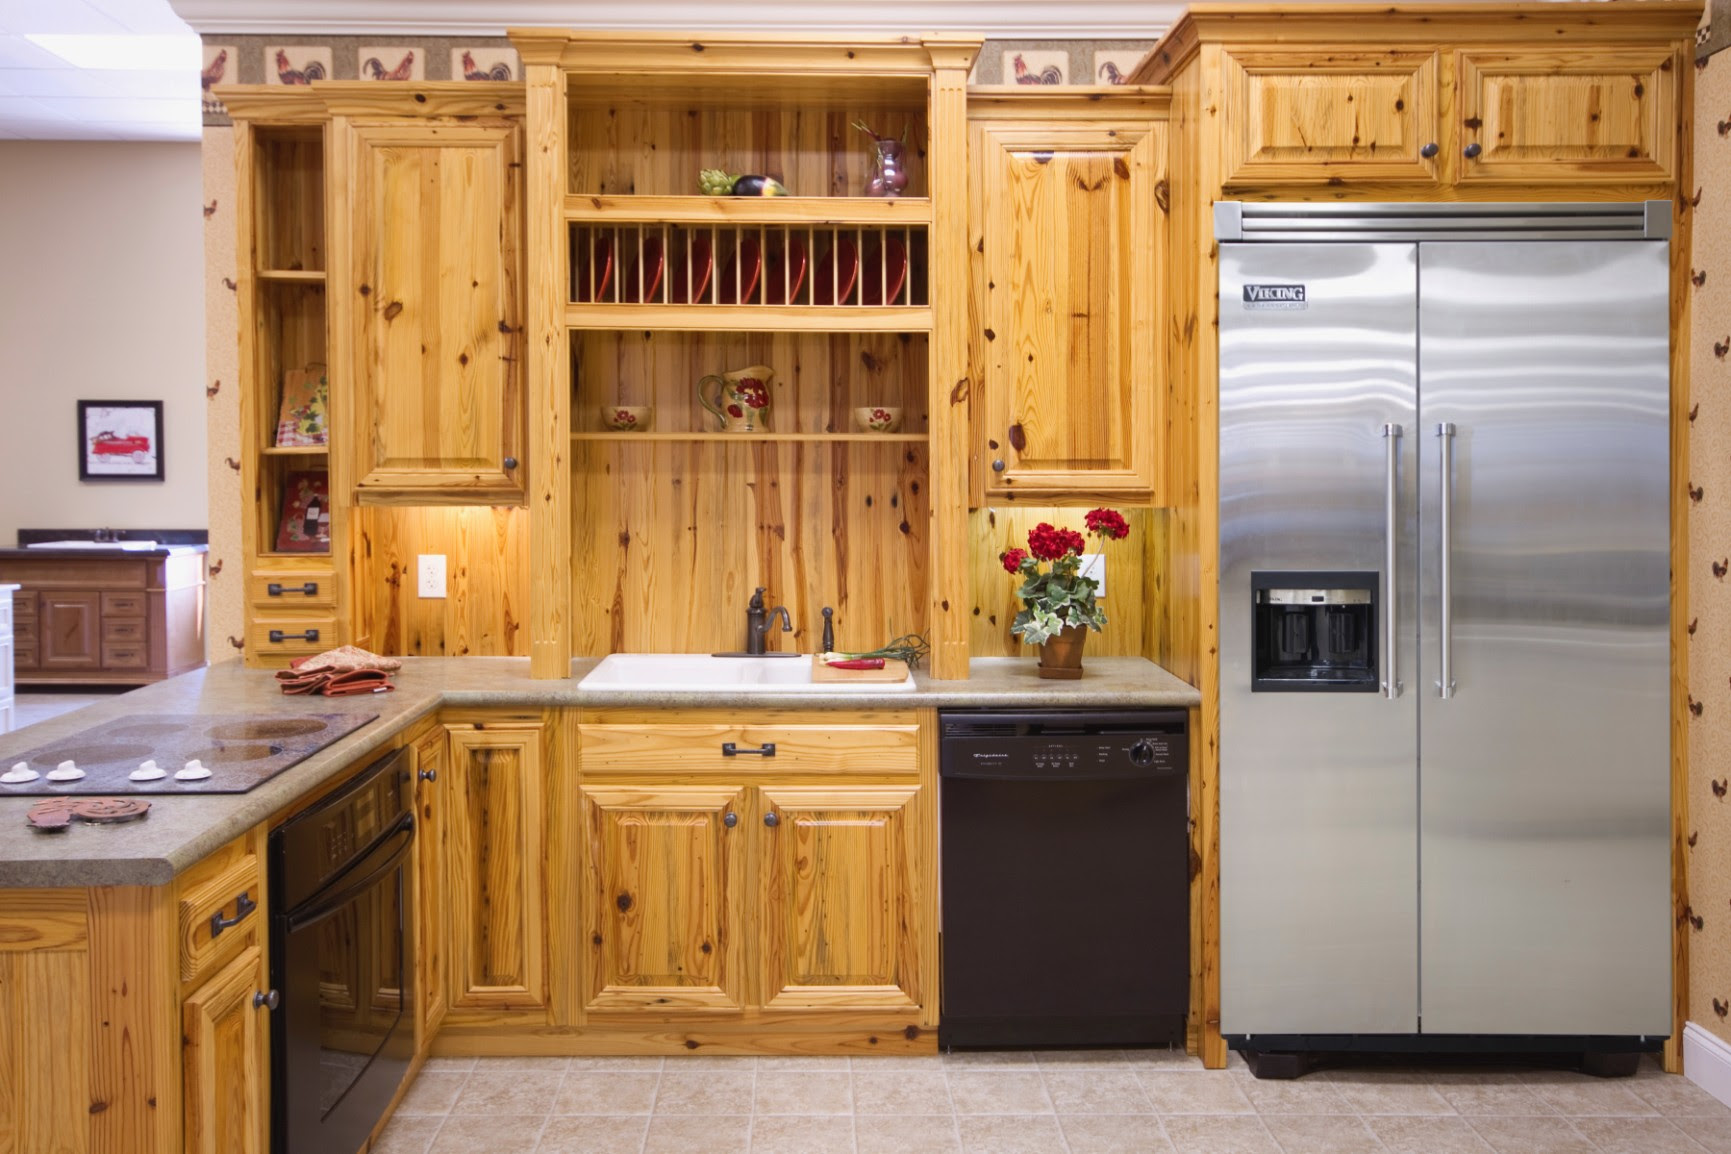 Pine Kitchens - Wood Hollow Cabinets